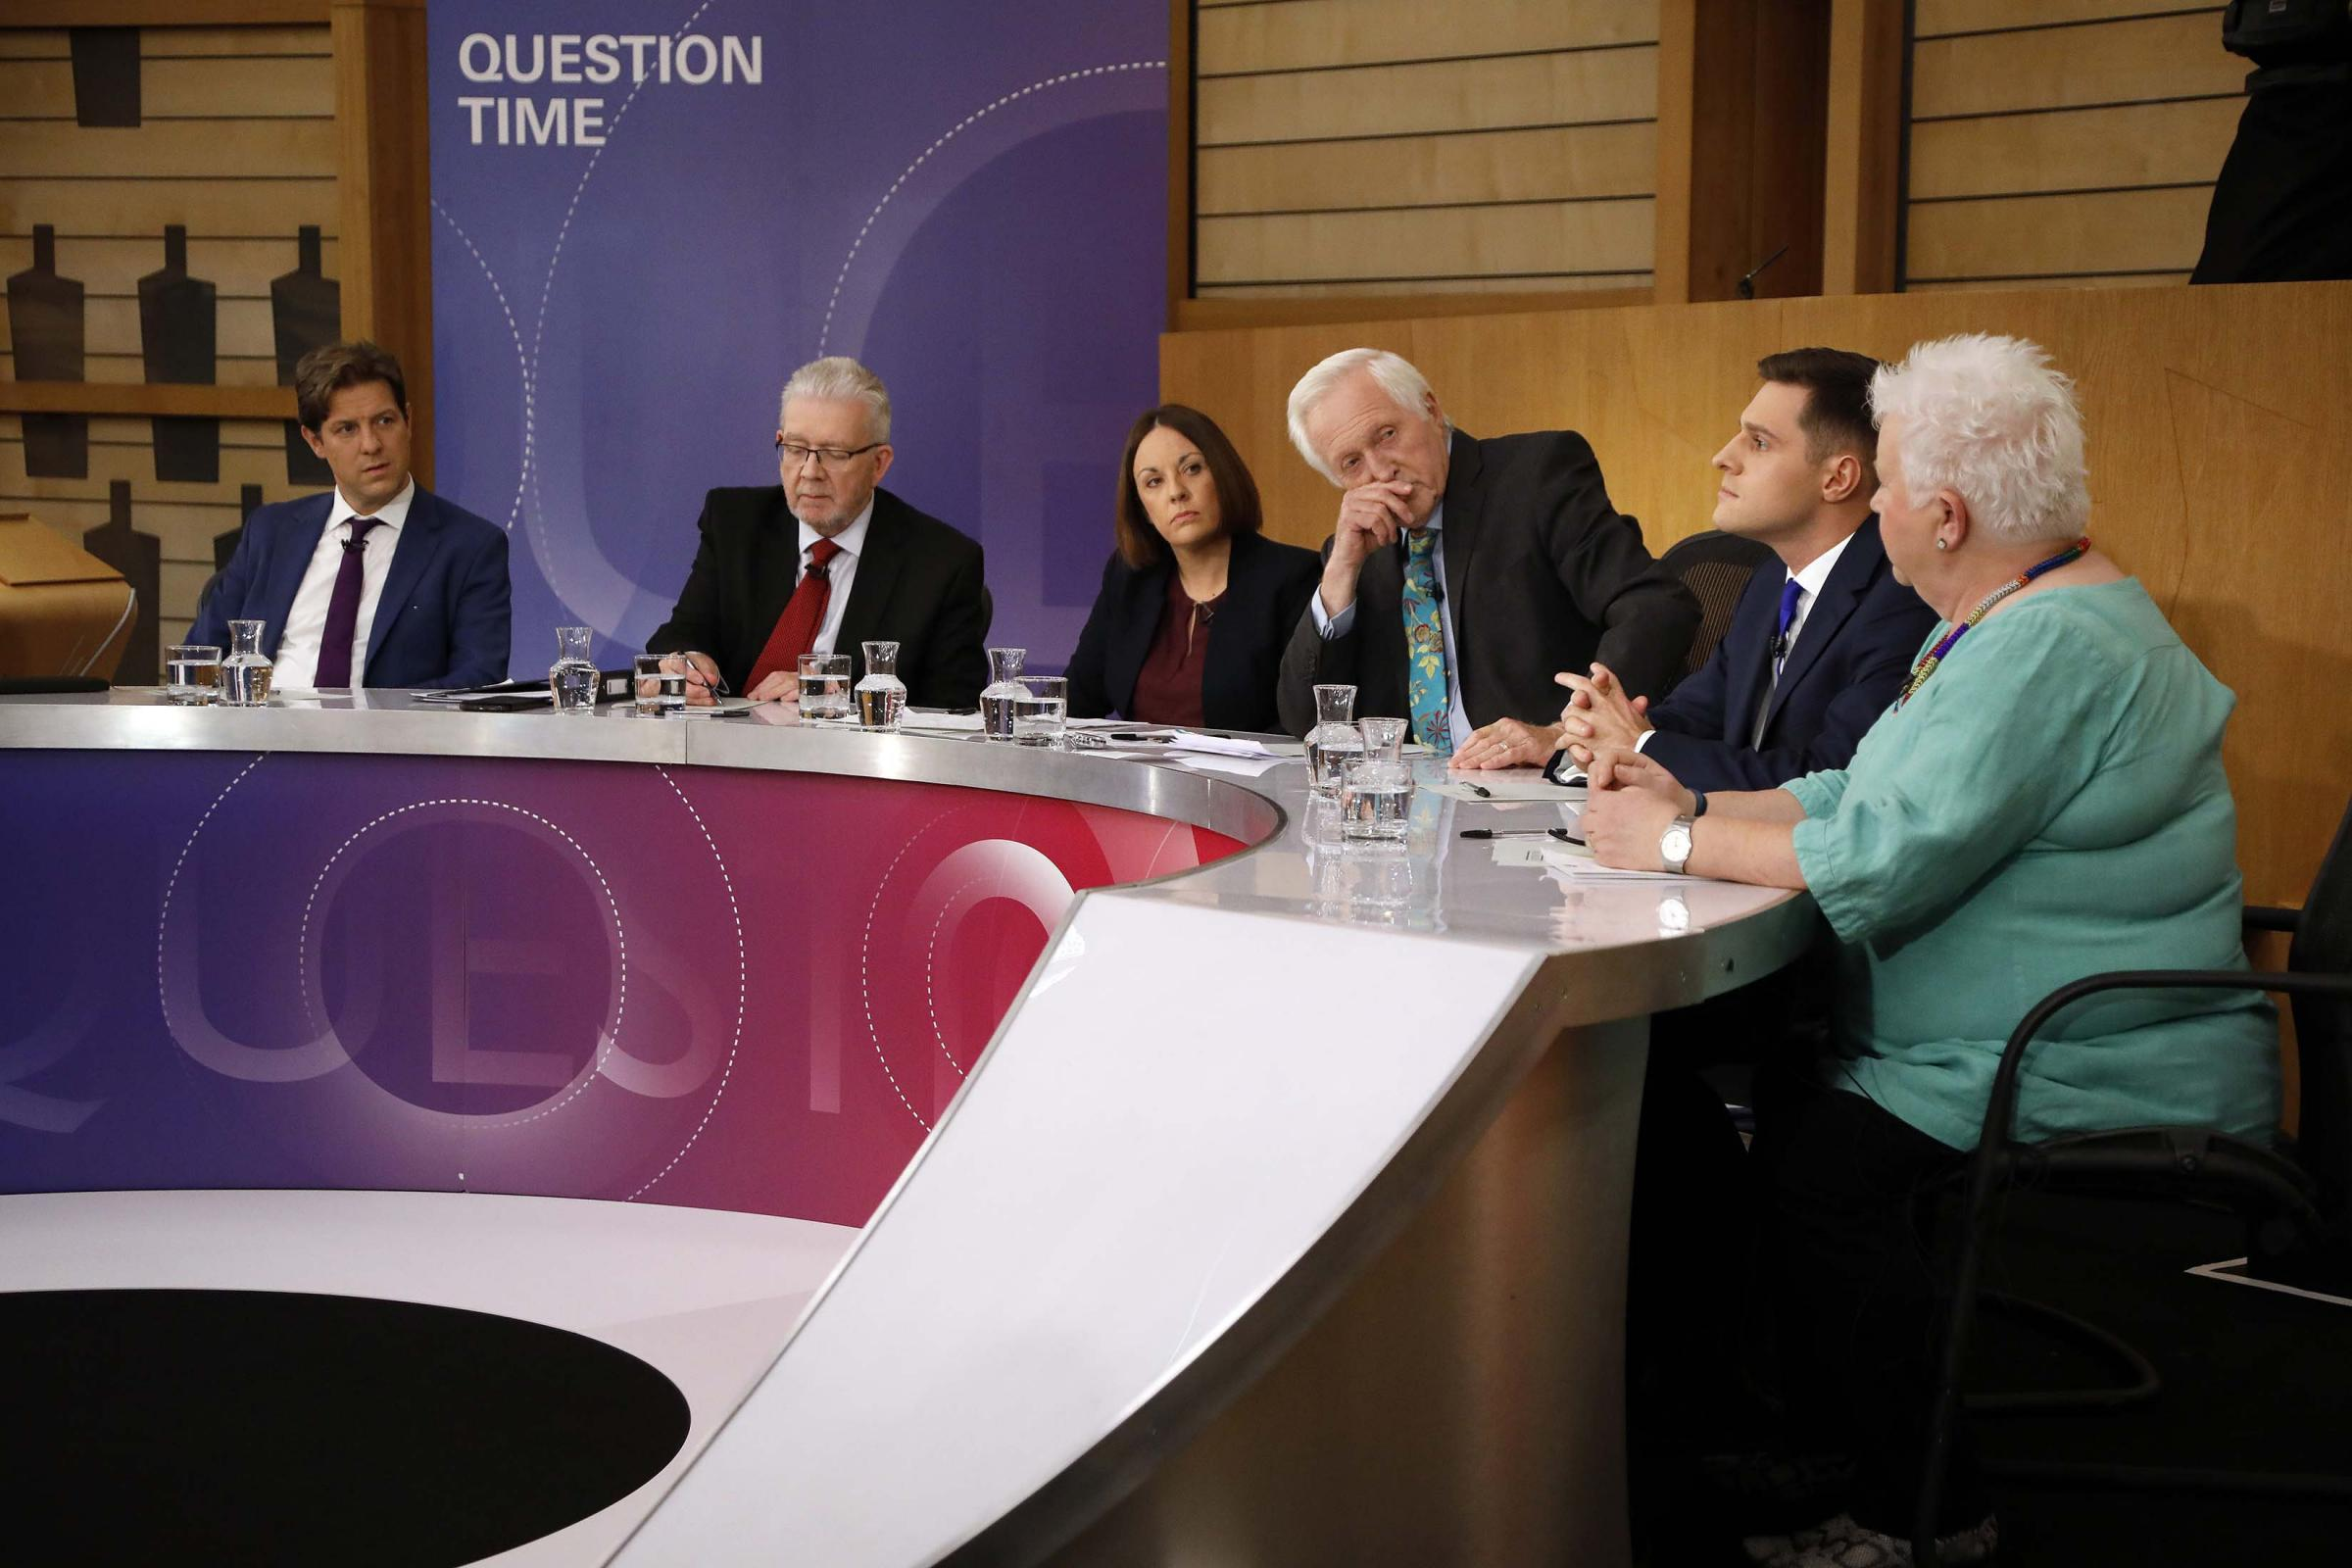 The BBC's Question Time faced criticism for the number of visits it had made to Scotland, and for the number of SNP politicians invited to appear relative to the LibDems